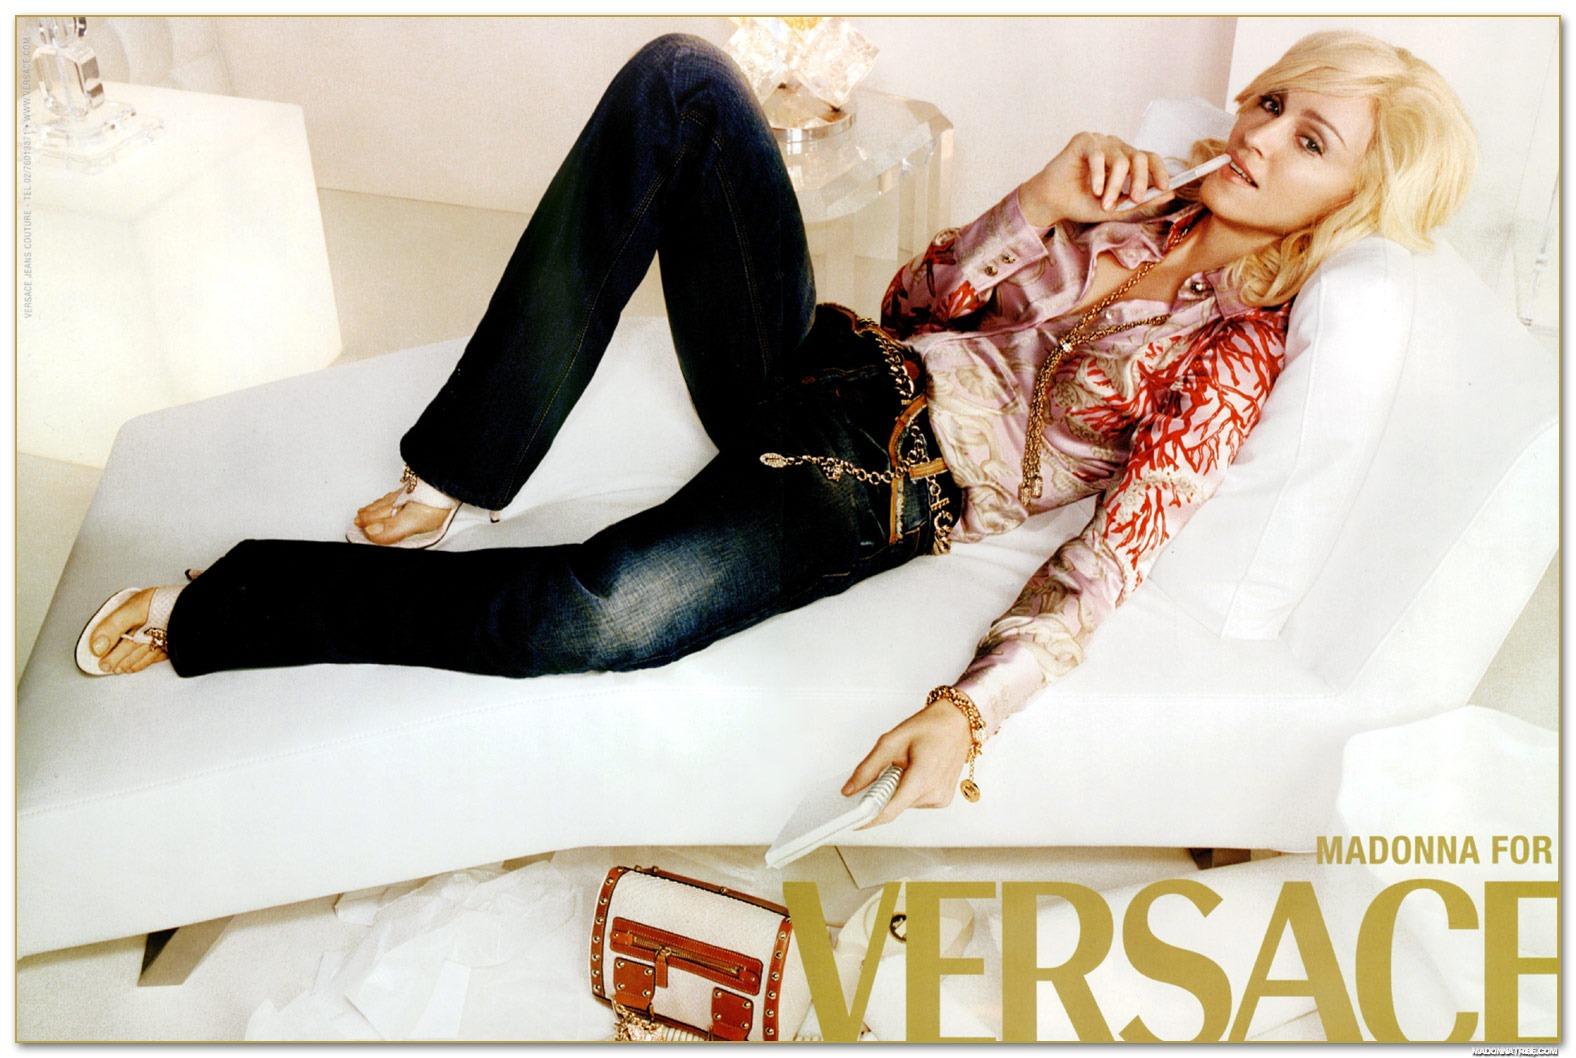 Madonna For Versace Campaign